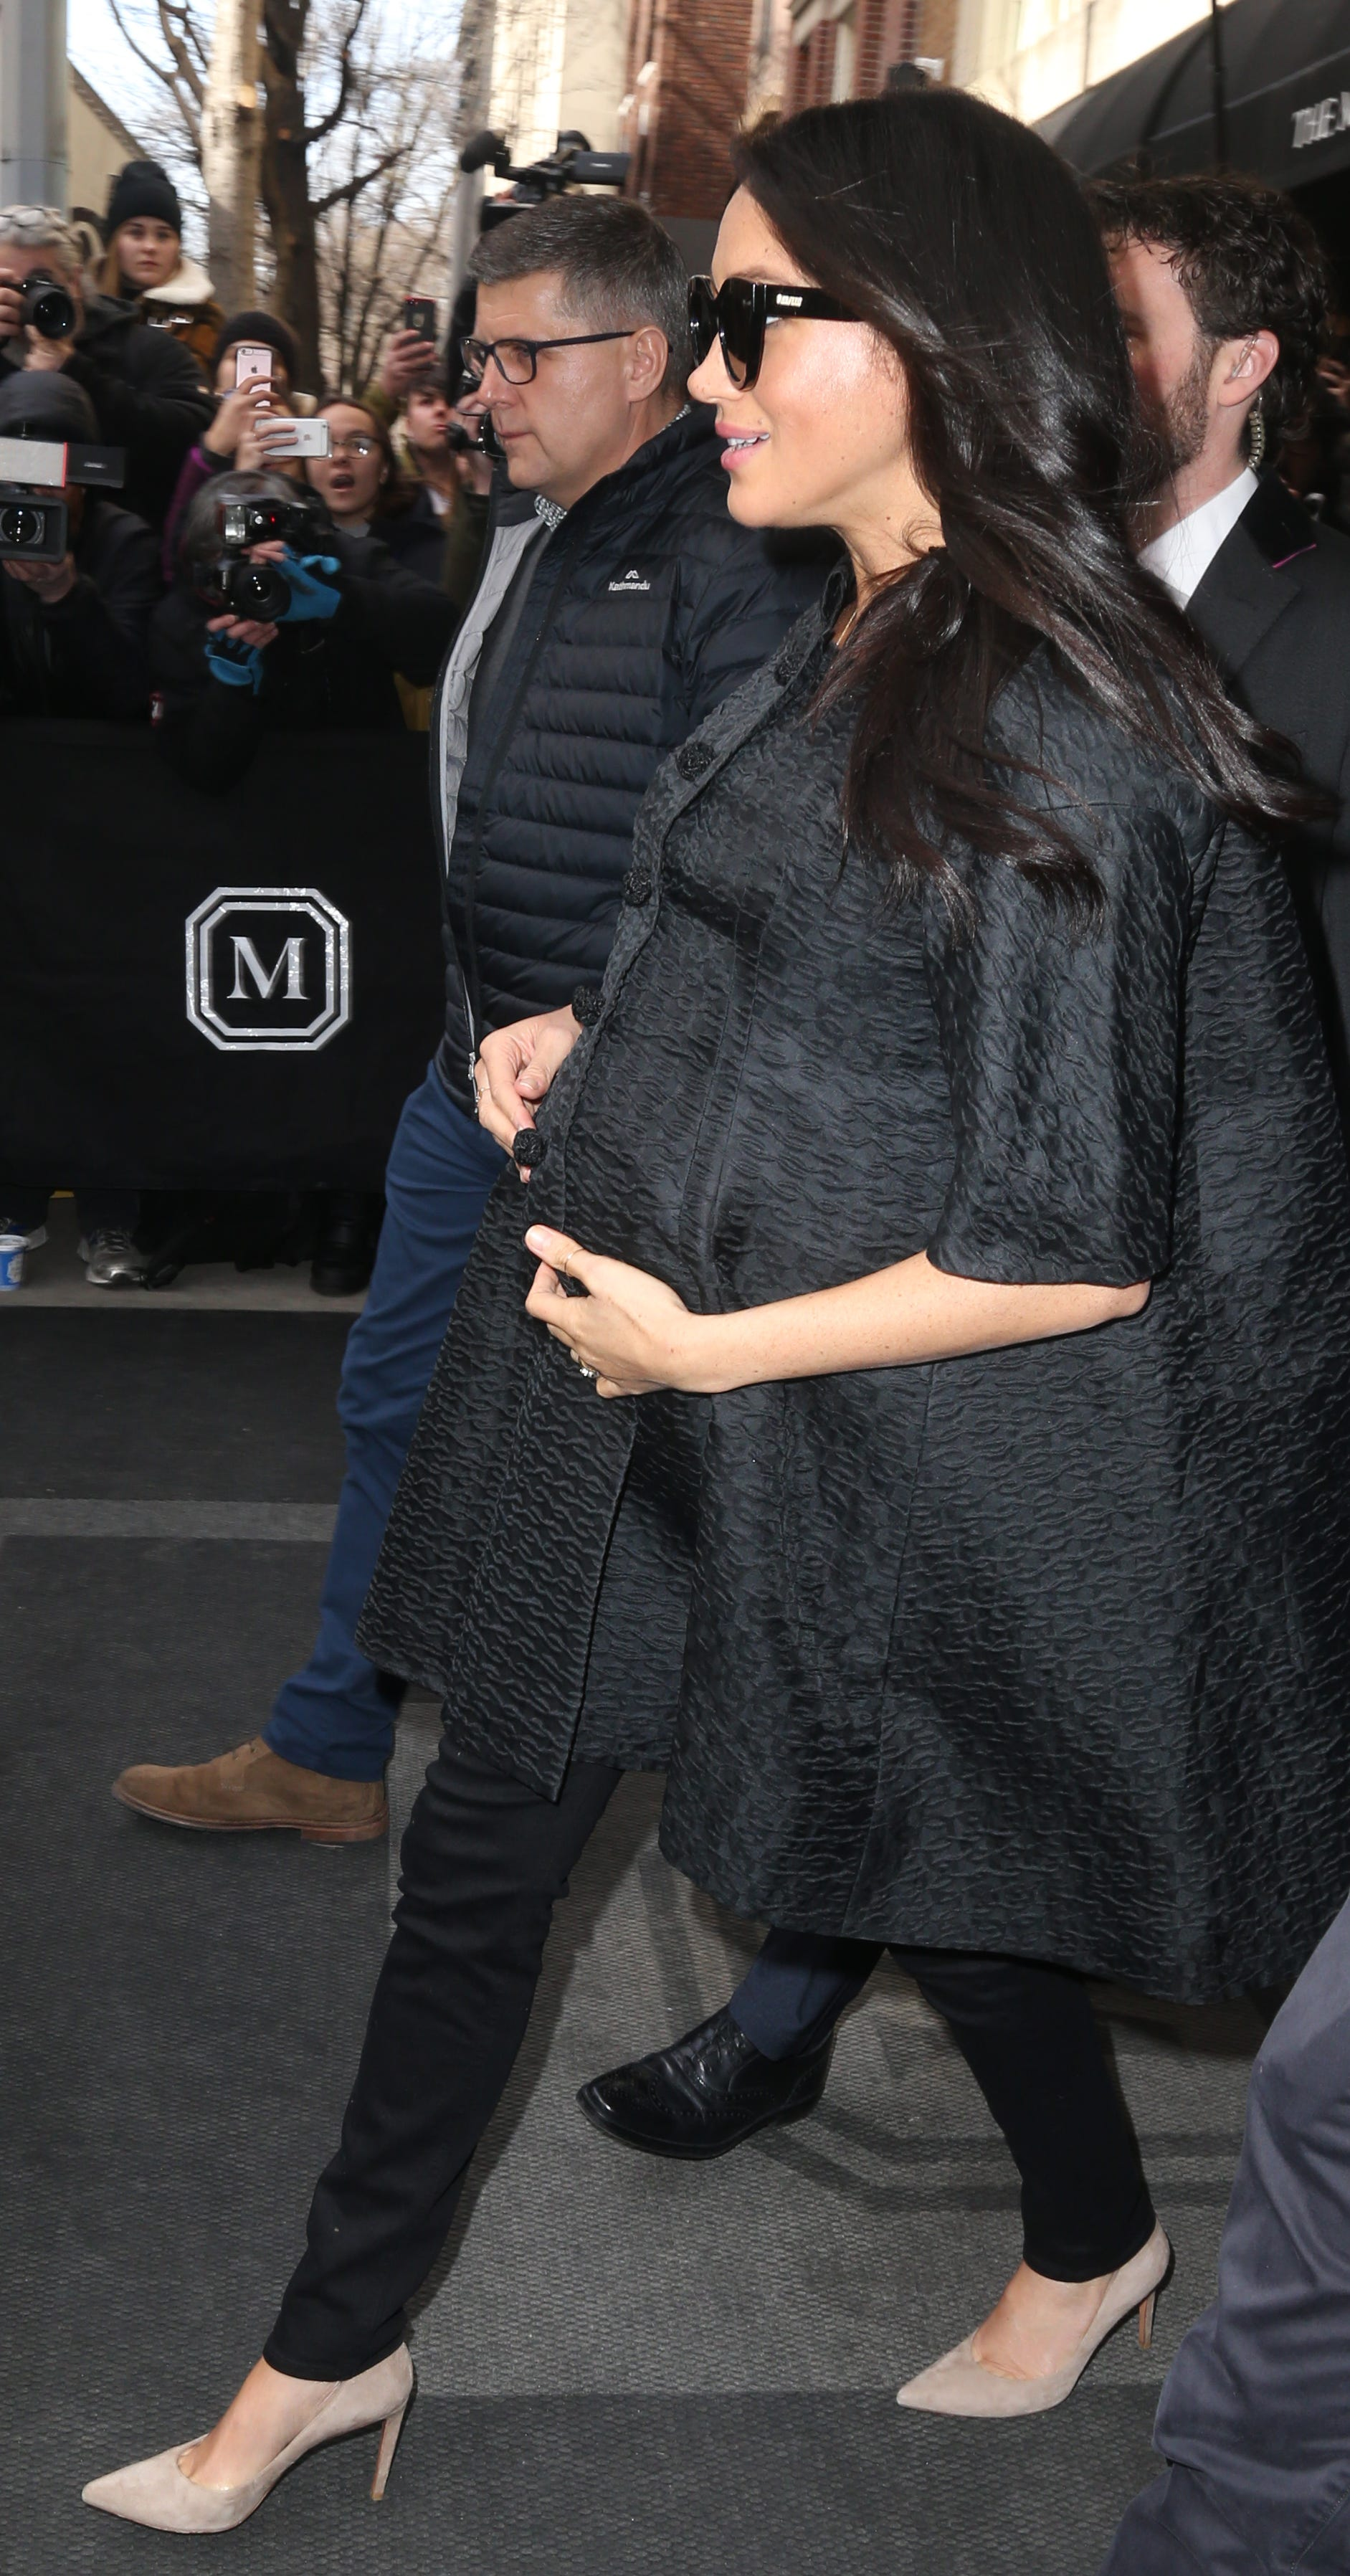 Duchess Meghan of Sussex was spotted by photographers as she headed to her baby shower in New York City on Feb. 19, 2019.